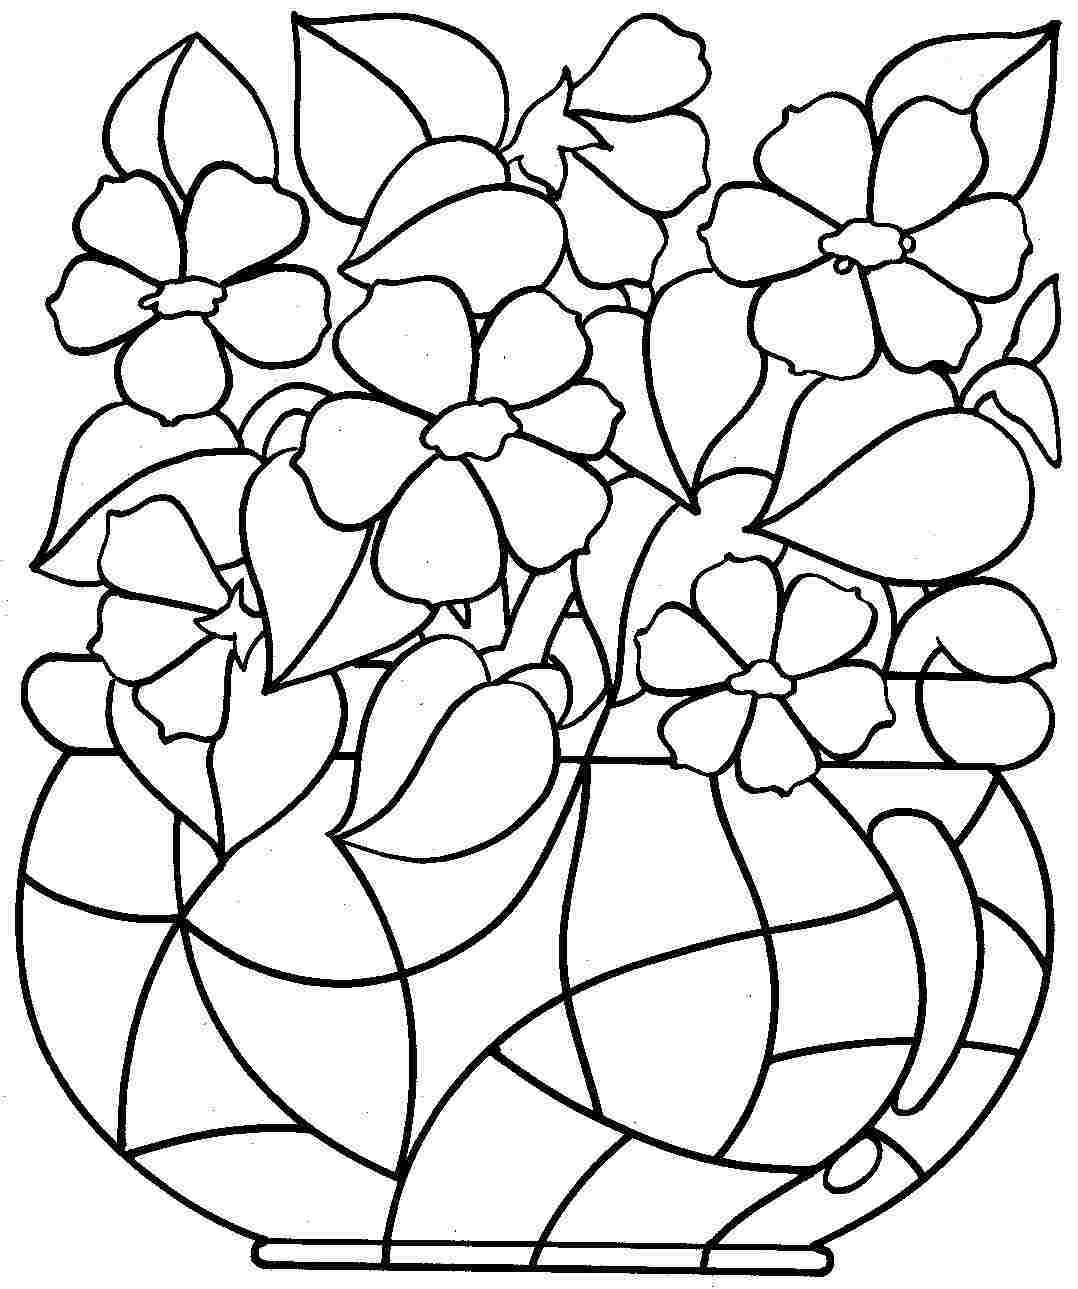 1078x1289 Fascinating Printable Coloring Pages Summer Image For Adults